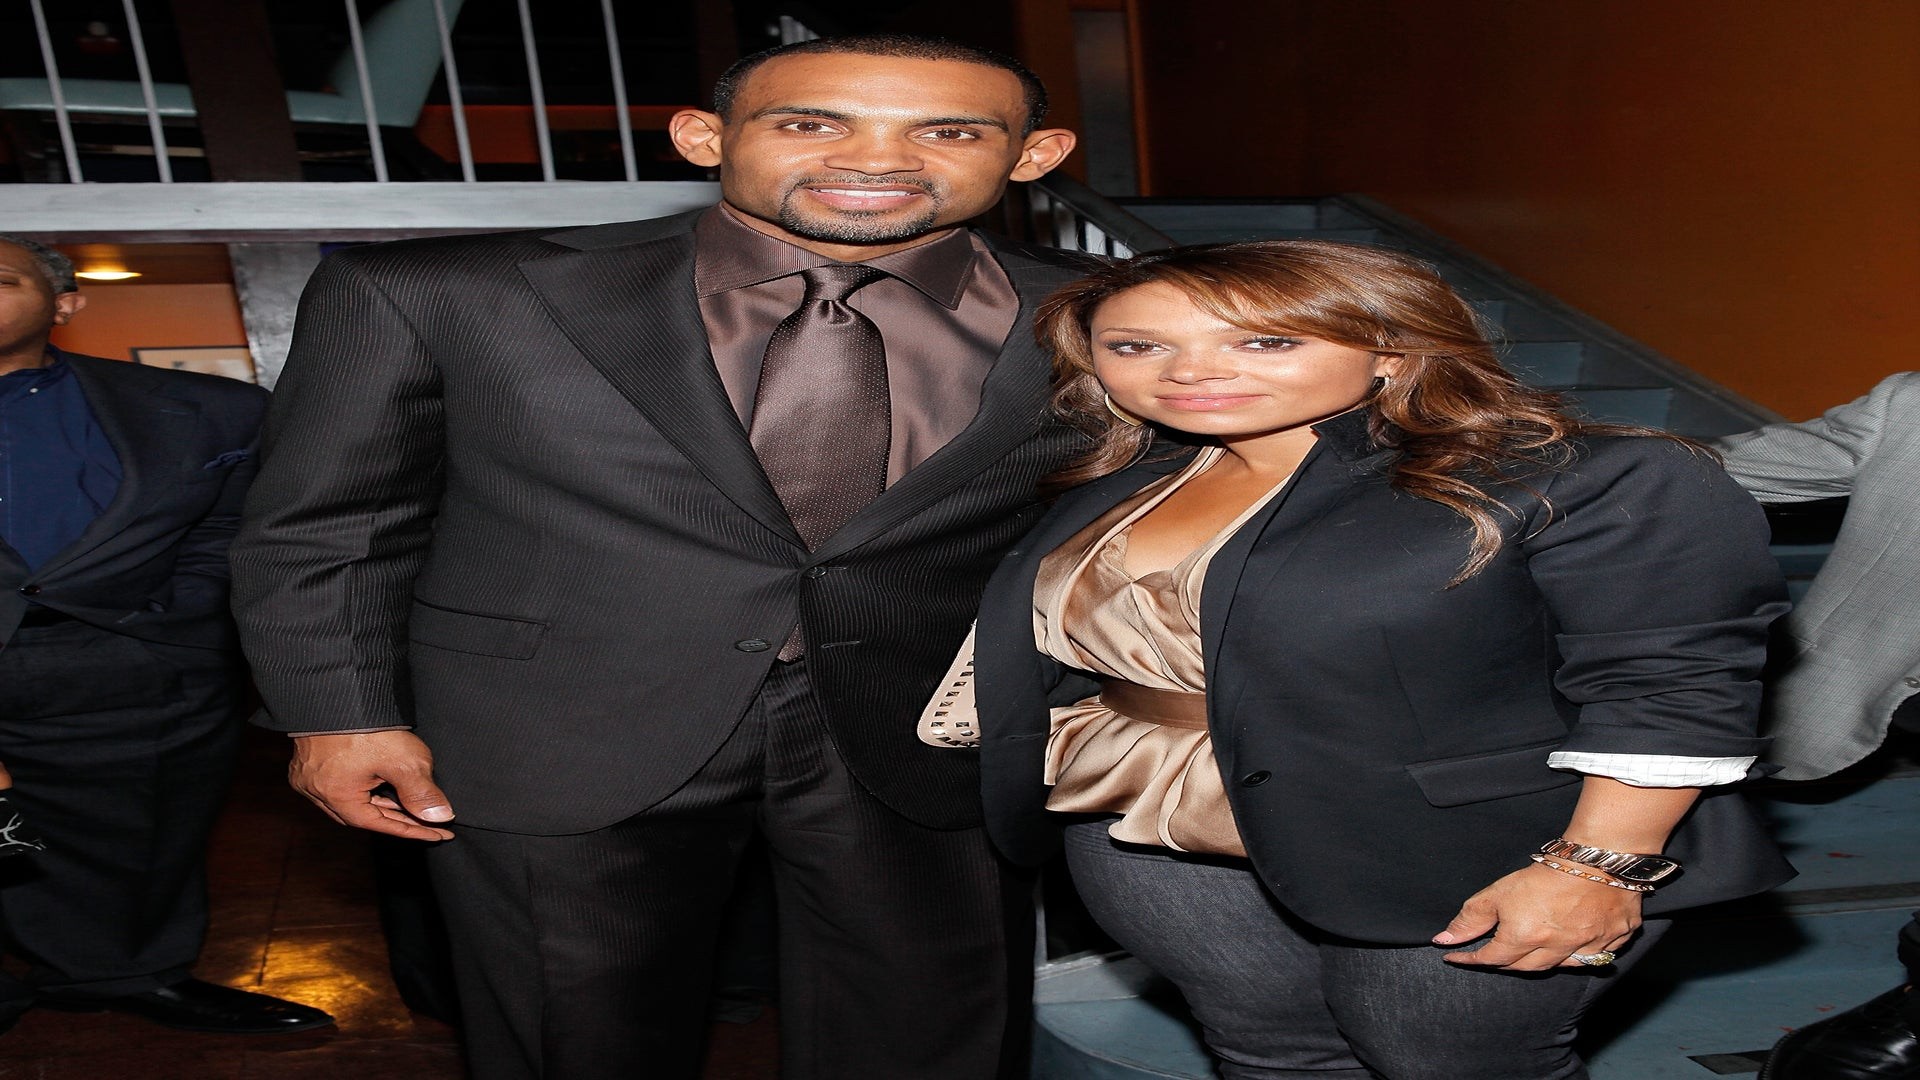 Tamia Supports Grant Hill As A Guest On NBA TV's 'Inside Stuff'